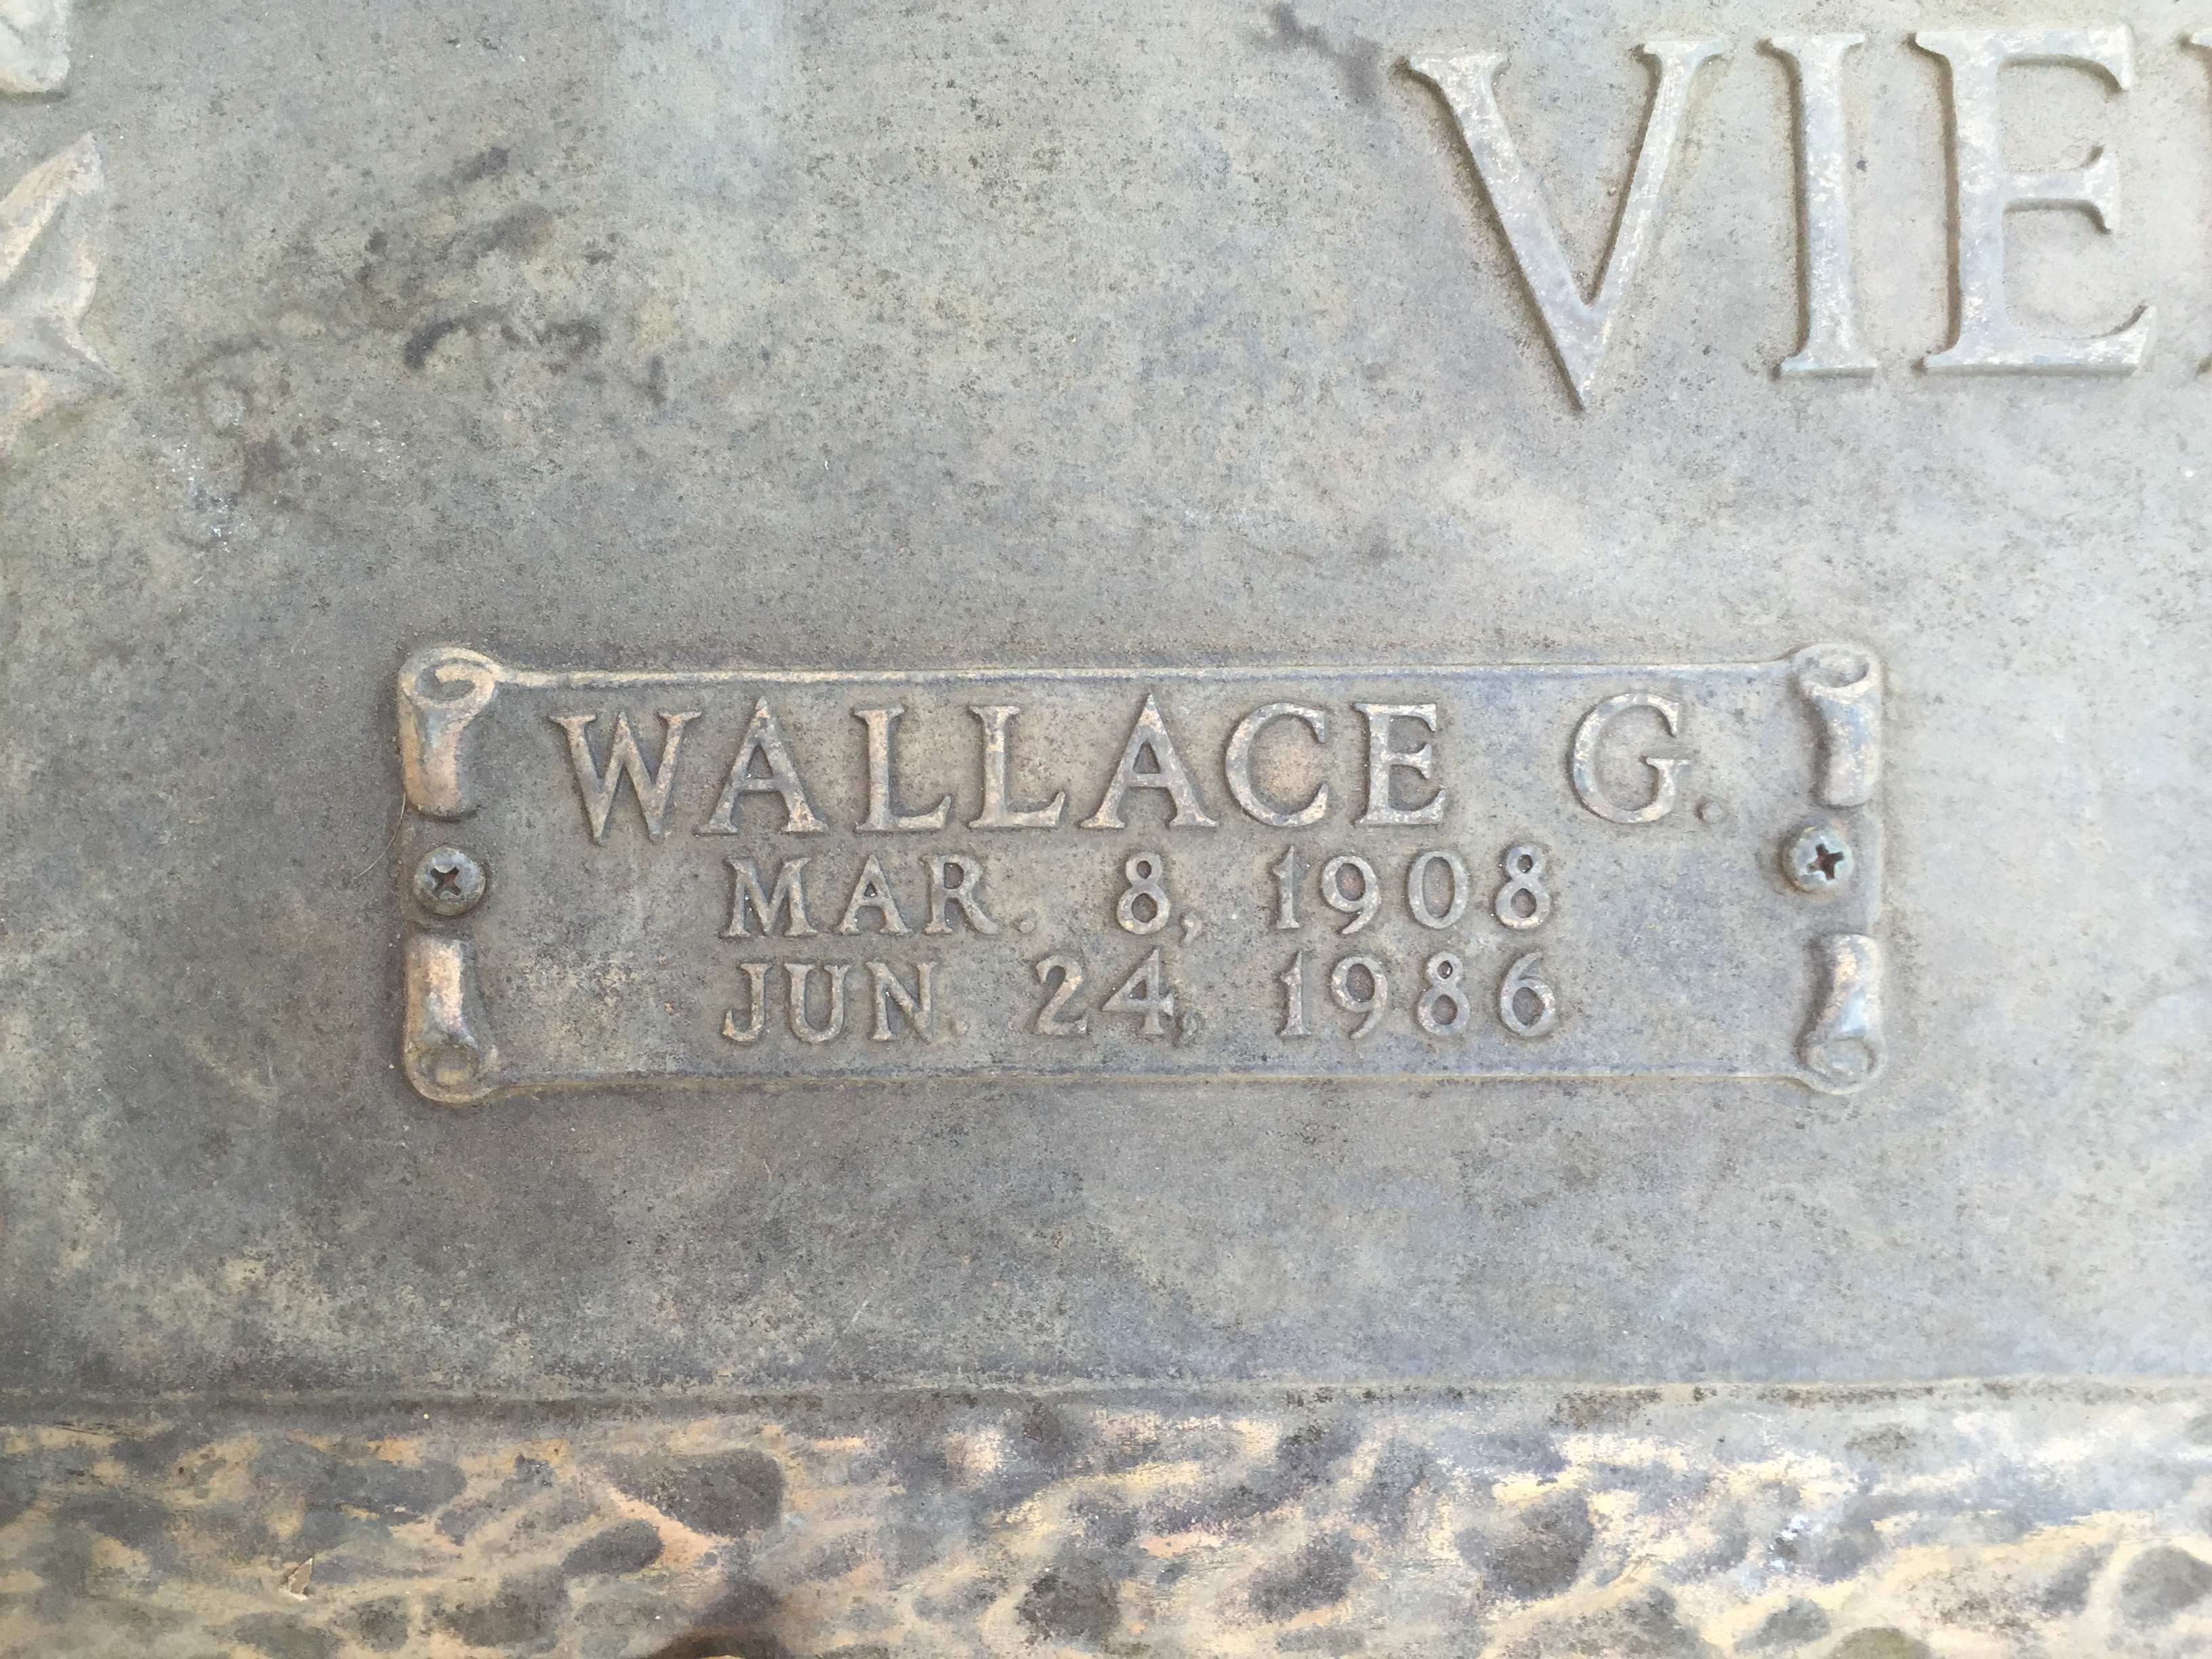 Wallace Gerald Wally Viers